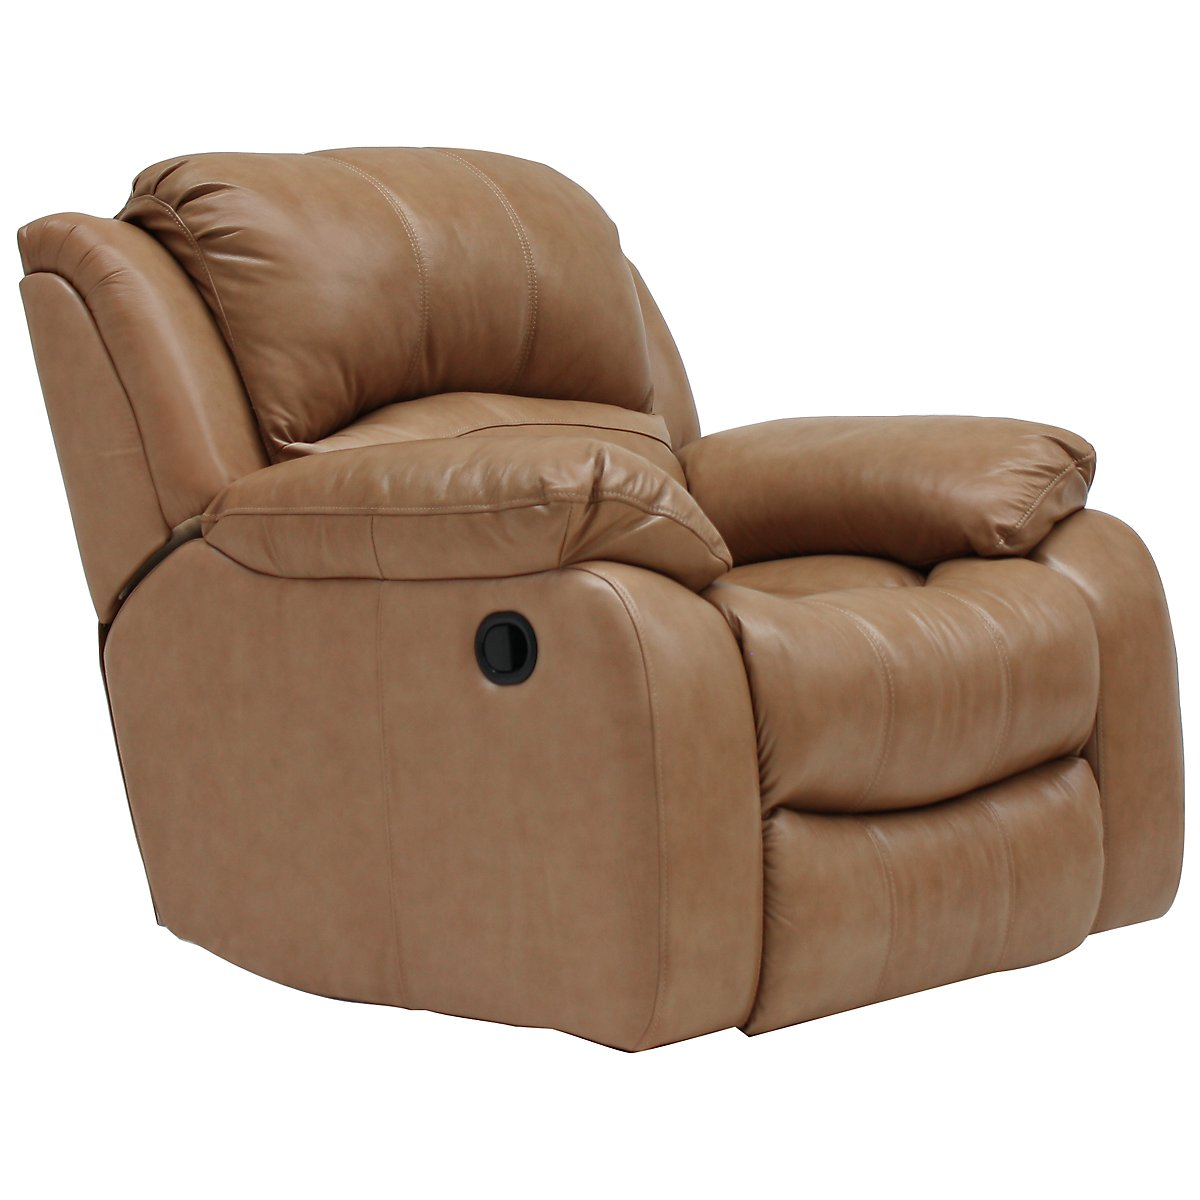 Tyler3 Dk Taupe Leather & Vinyl Power Recliner